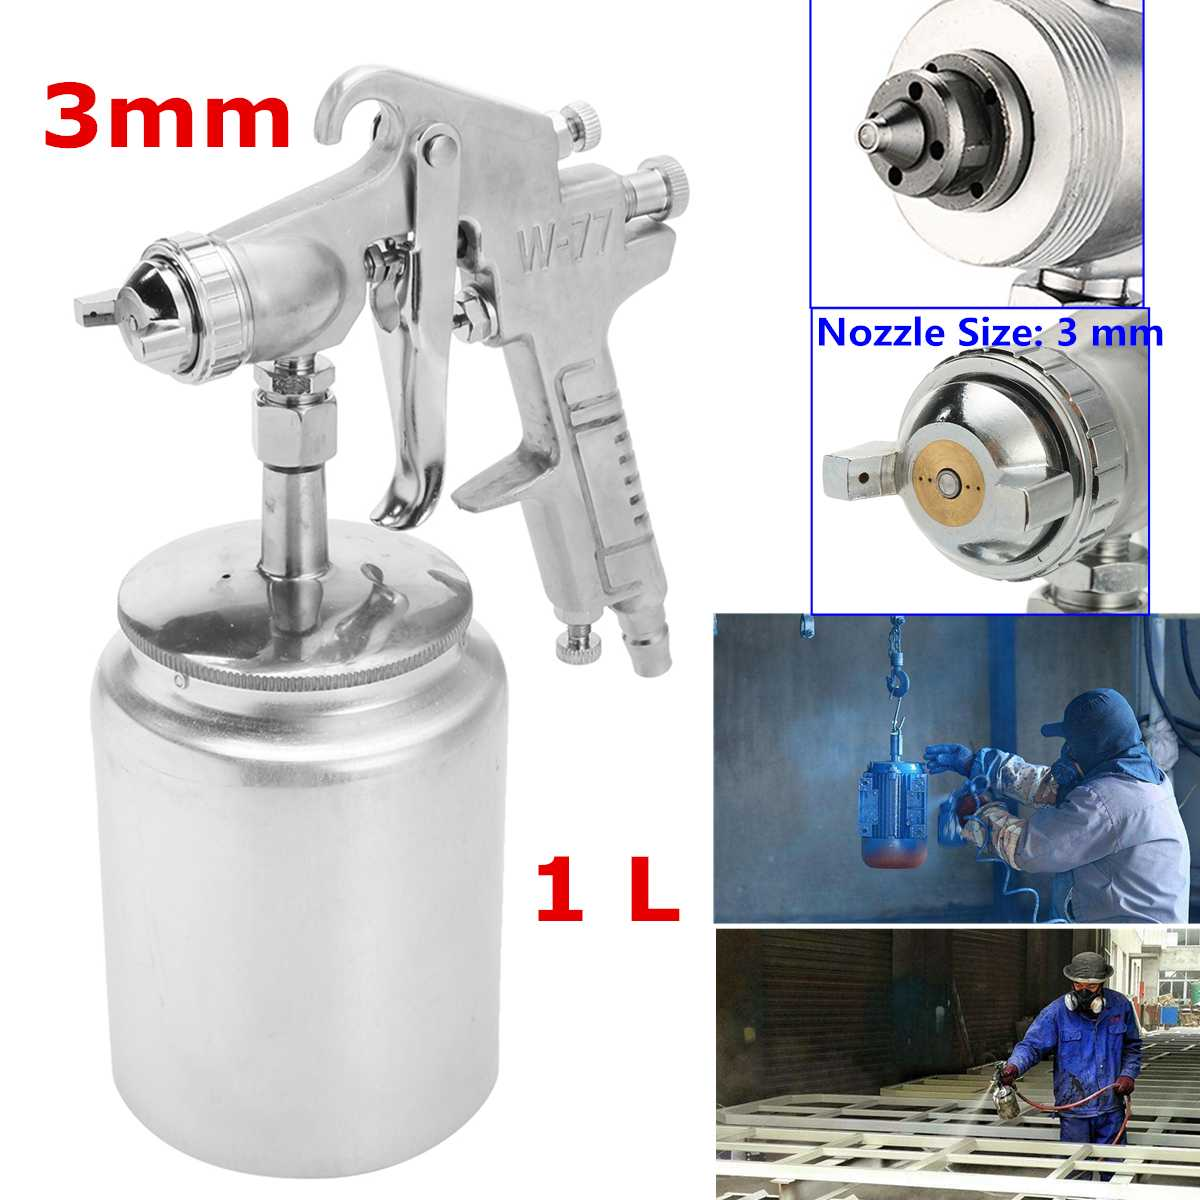 Heavy 3mm Painting Spray Gun/ Nozzle Suction Feed Paint Air Sprayer 1L Pot Handheld Electric Pressure Vacuum Spray Gun/Tool